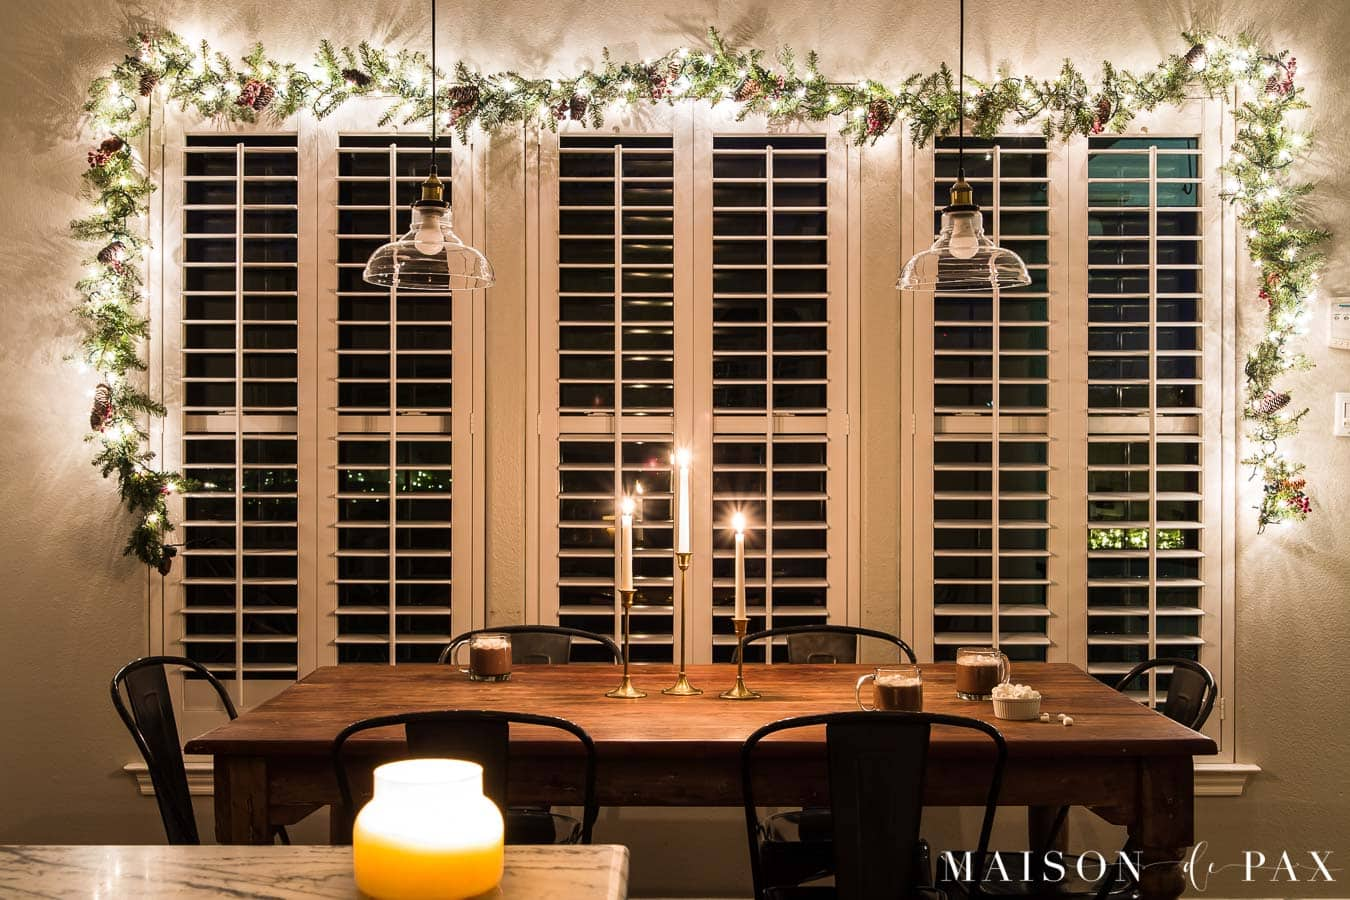 large windows with garland with lights | Maison de Pax